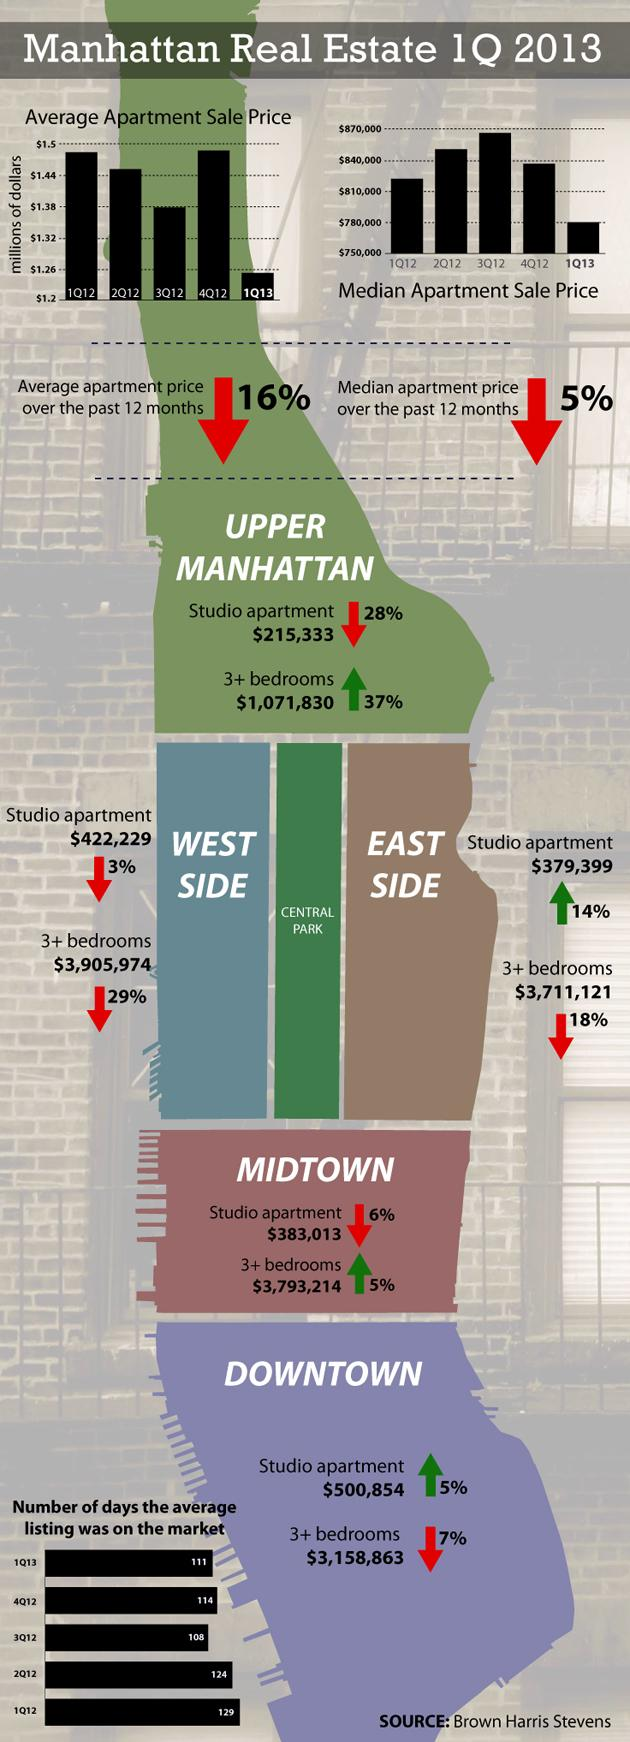 Manhattan real estate 1Q 2013 (Chart)